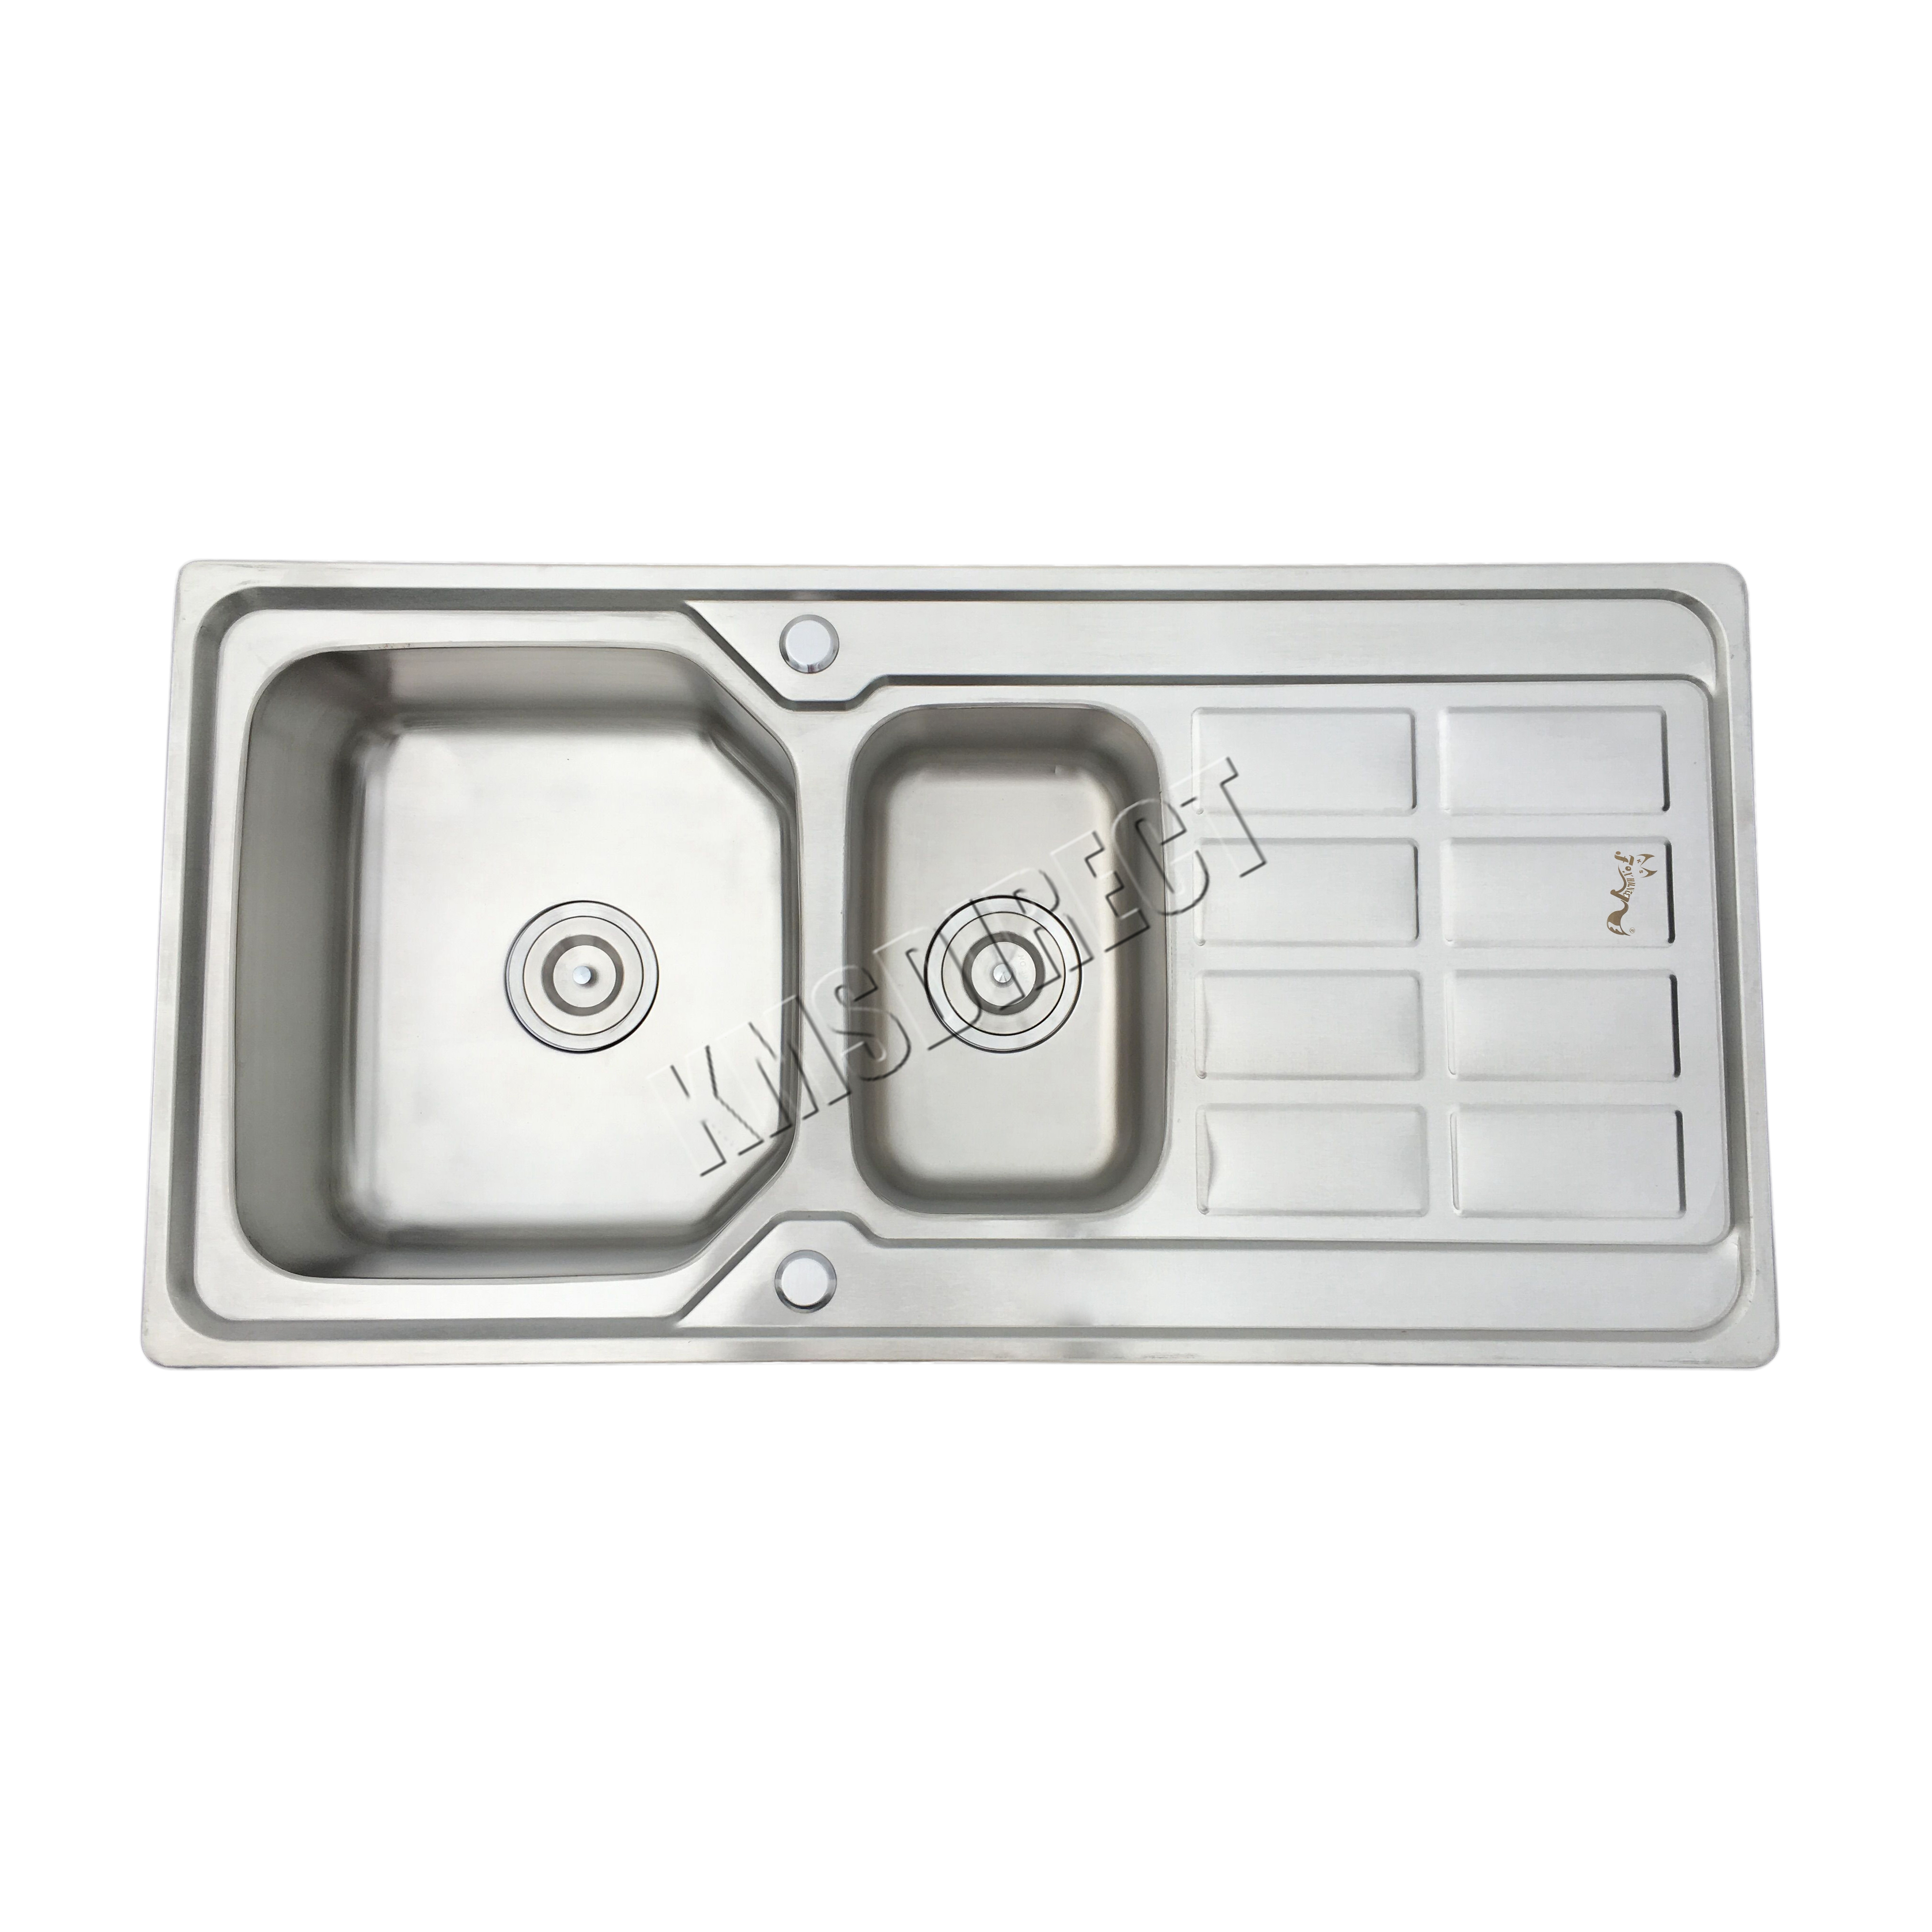 WestWood Double 1.0 1.5 Bowl Stainless Steel Kitchen Sink Complete ...